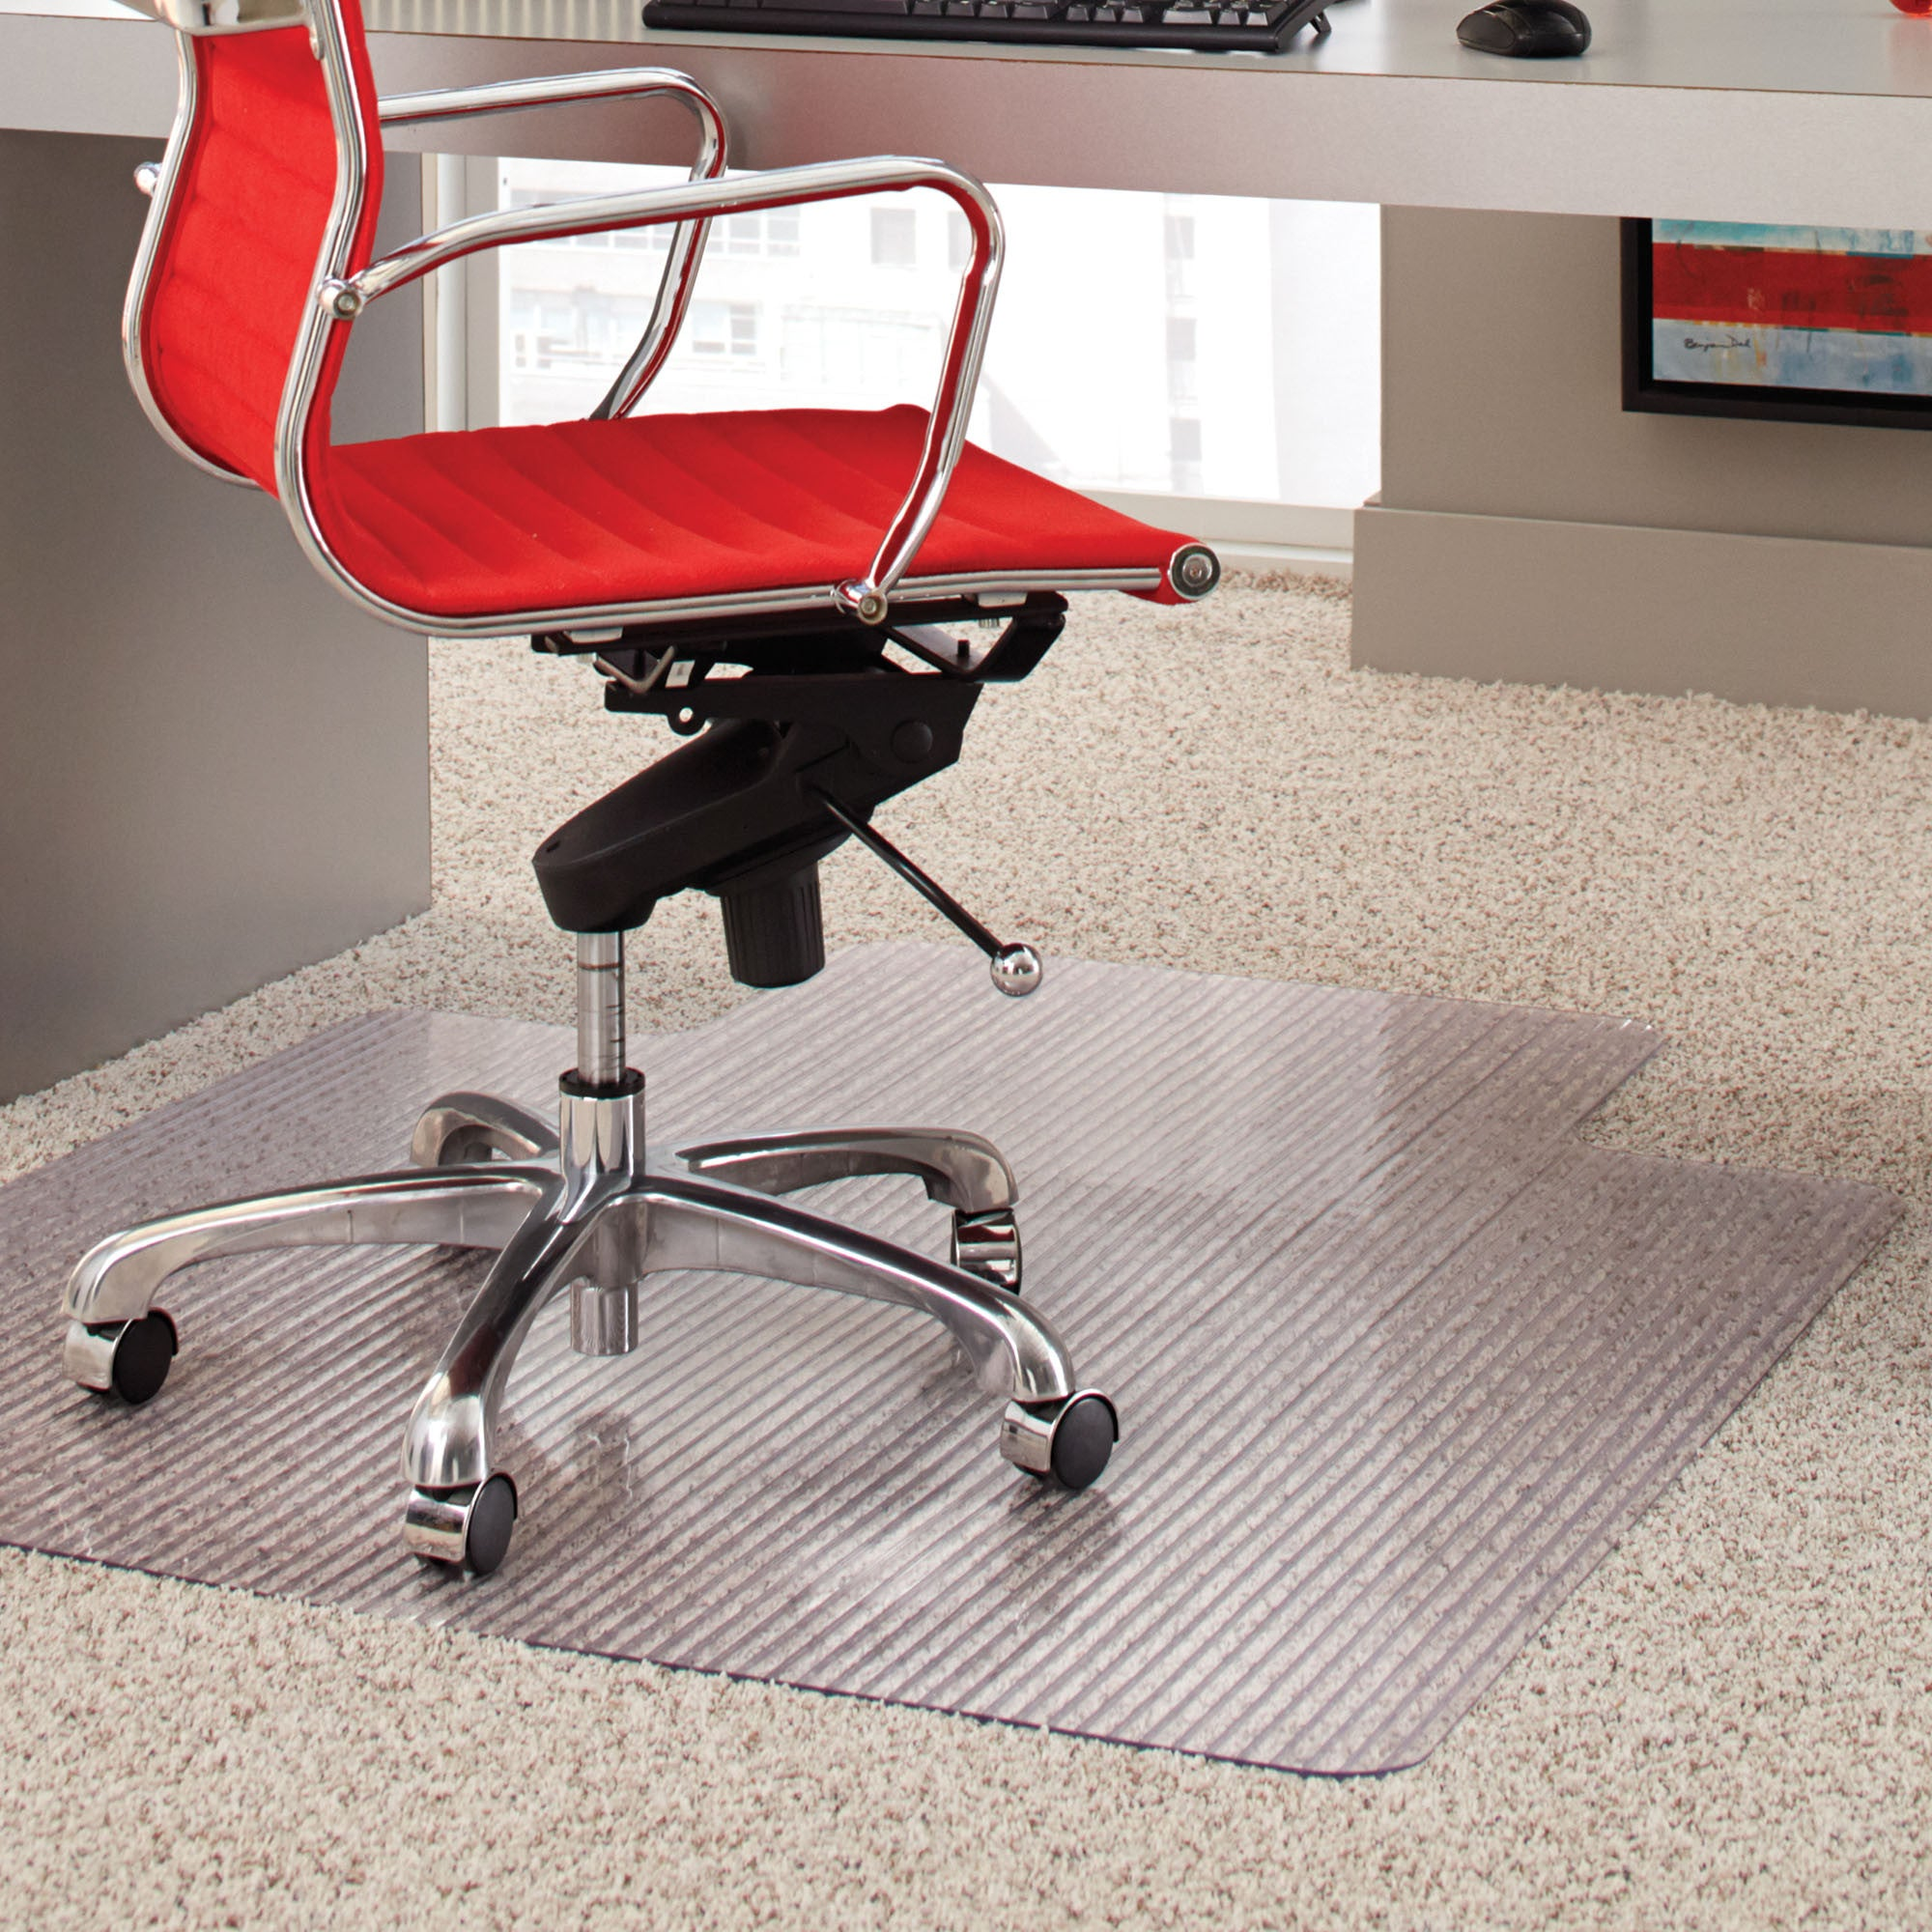 linear chair mats welcome to myfloormat com